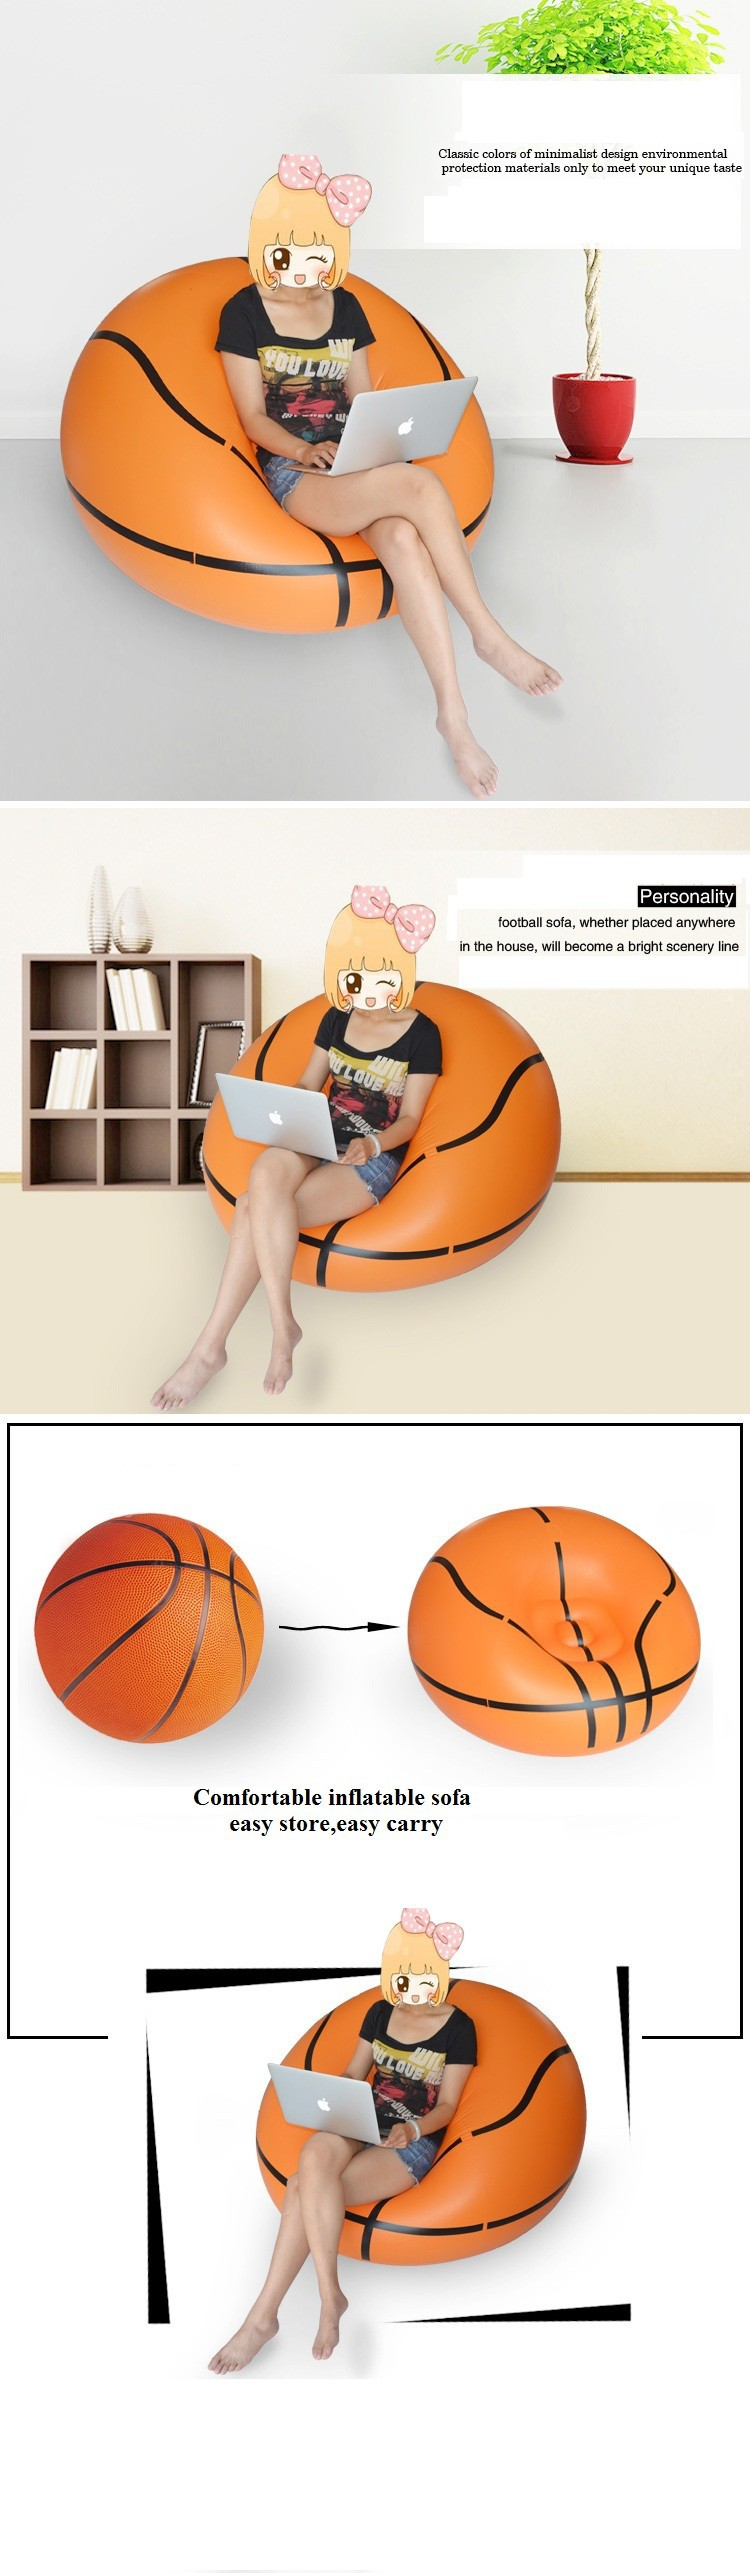 Basketball Bean Bag Chair Inflatable Stool Inflatable Sofa Bean Bag Sofa Basketball Sofa